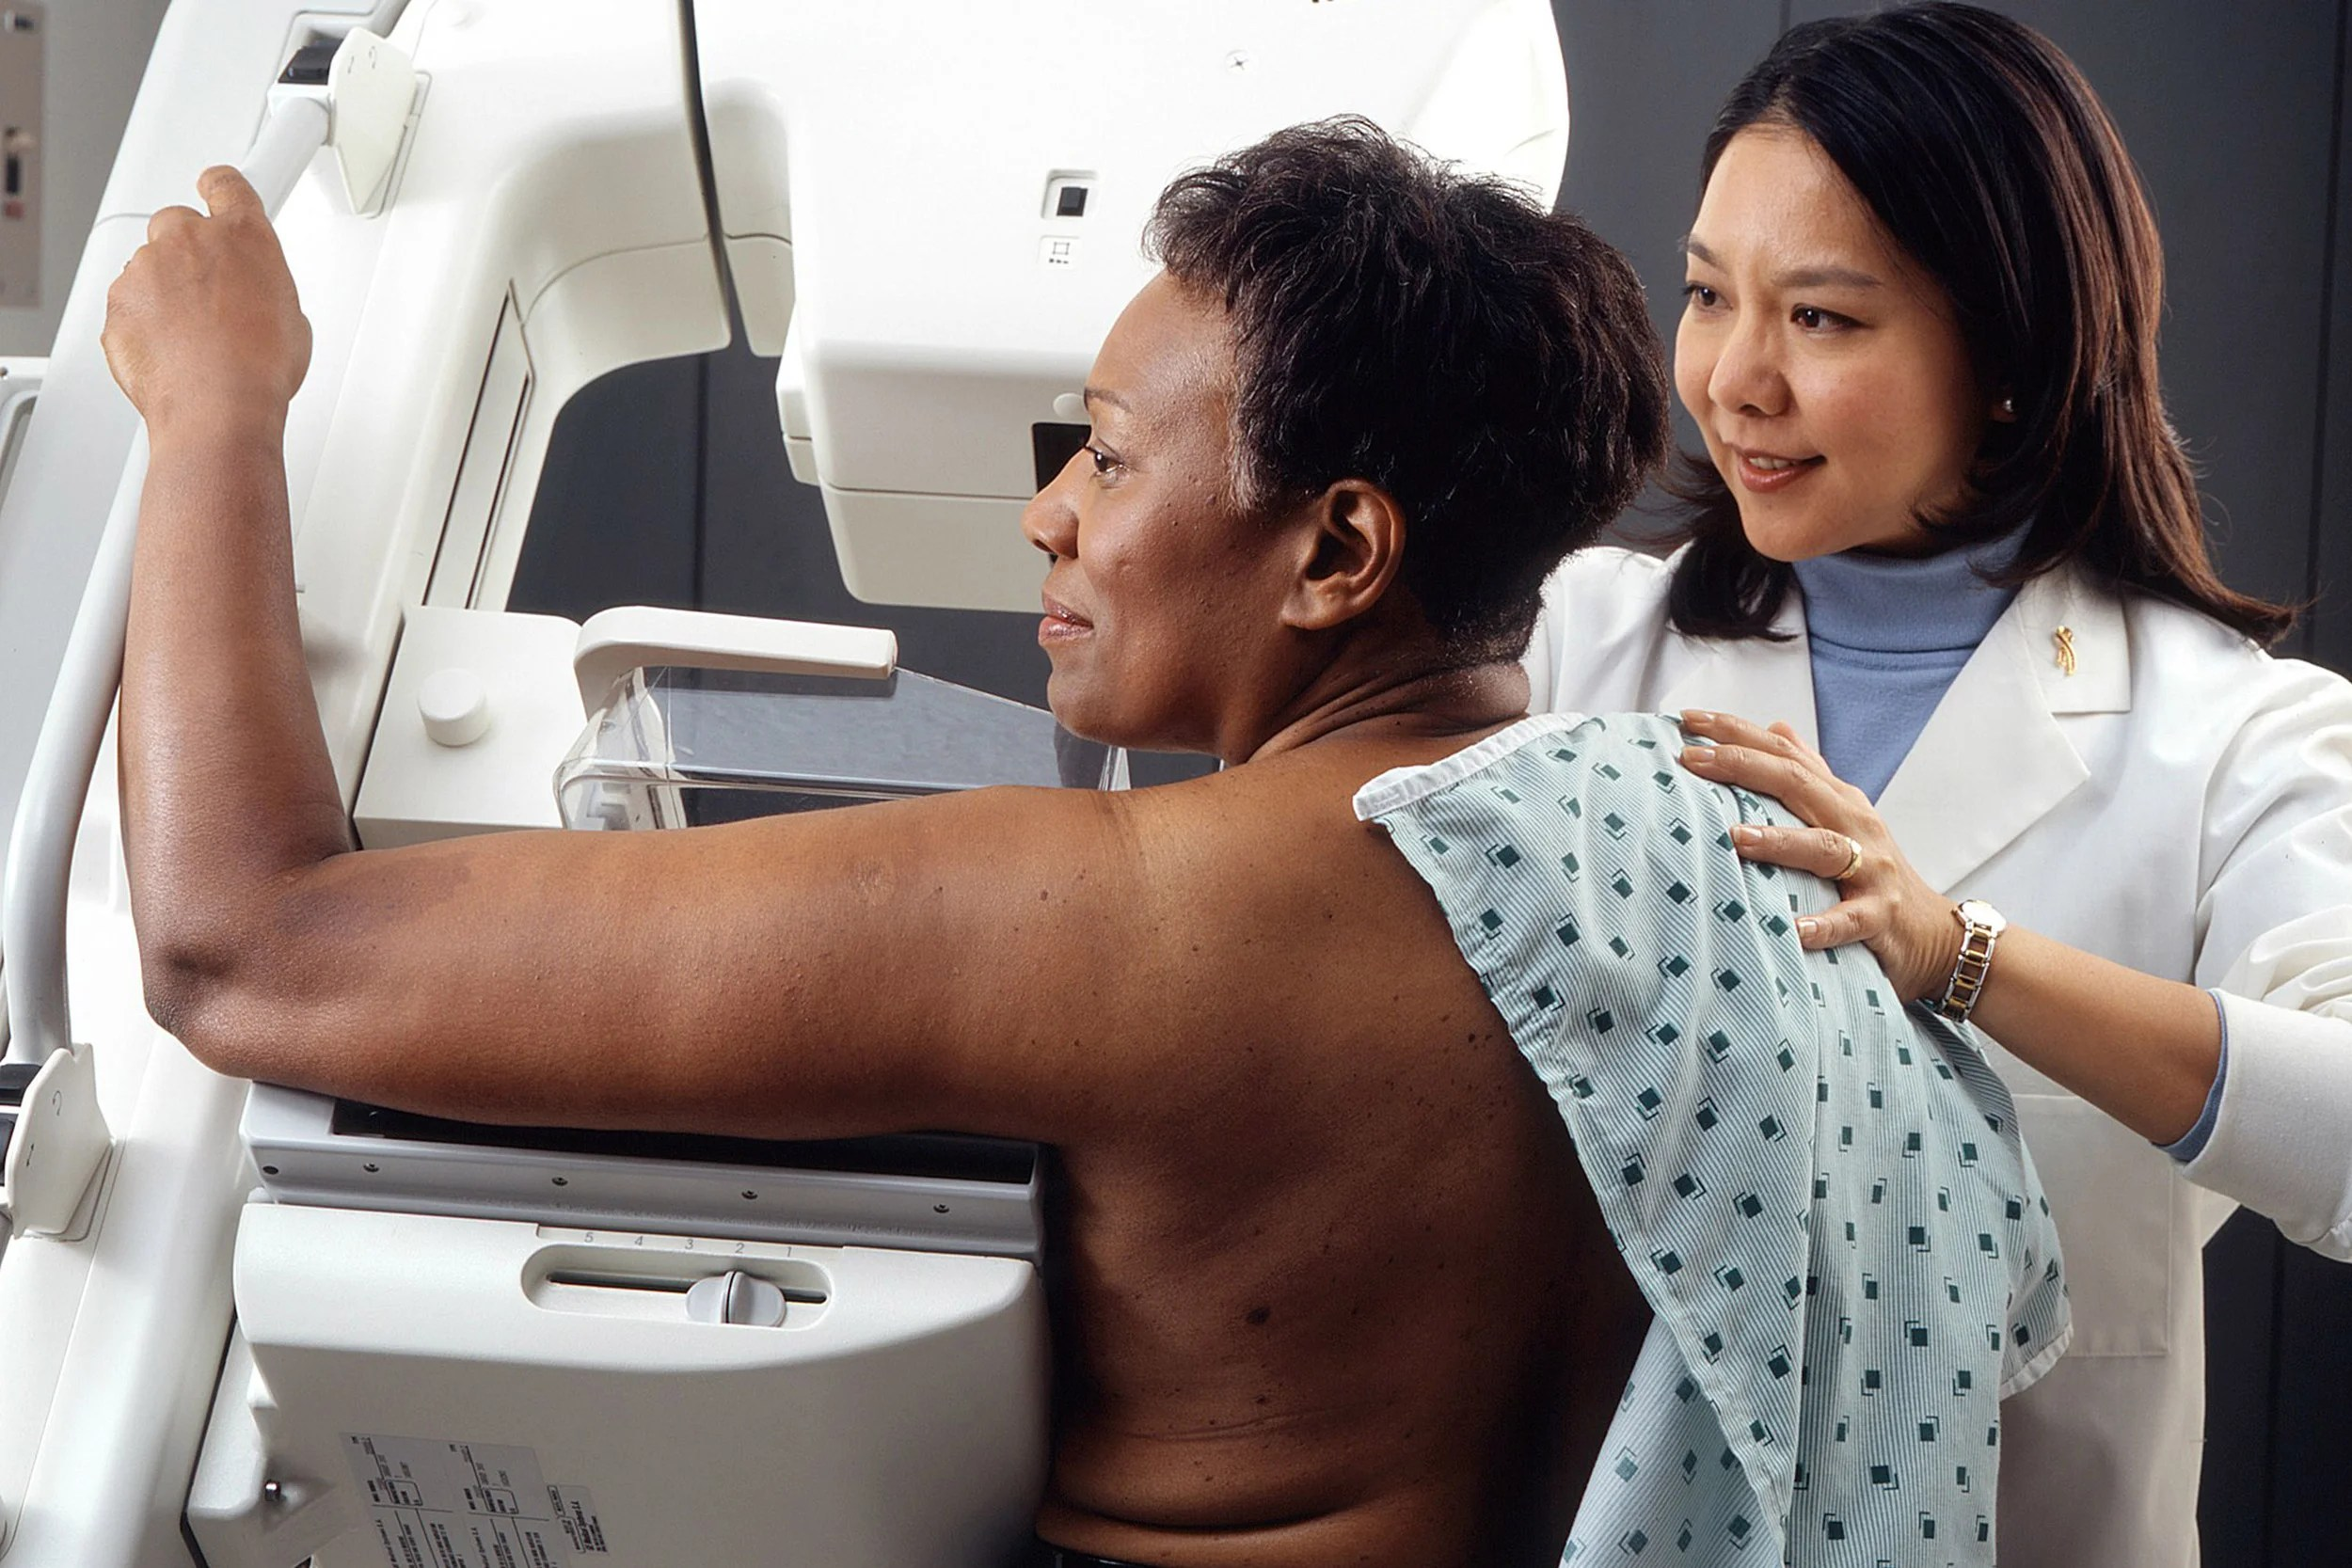 Age-based mammography screening guidelines may put nonwhite women at risk